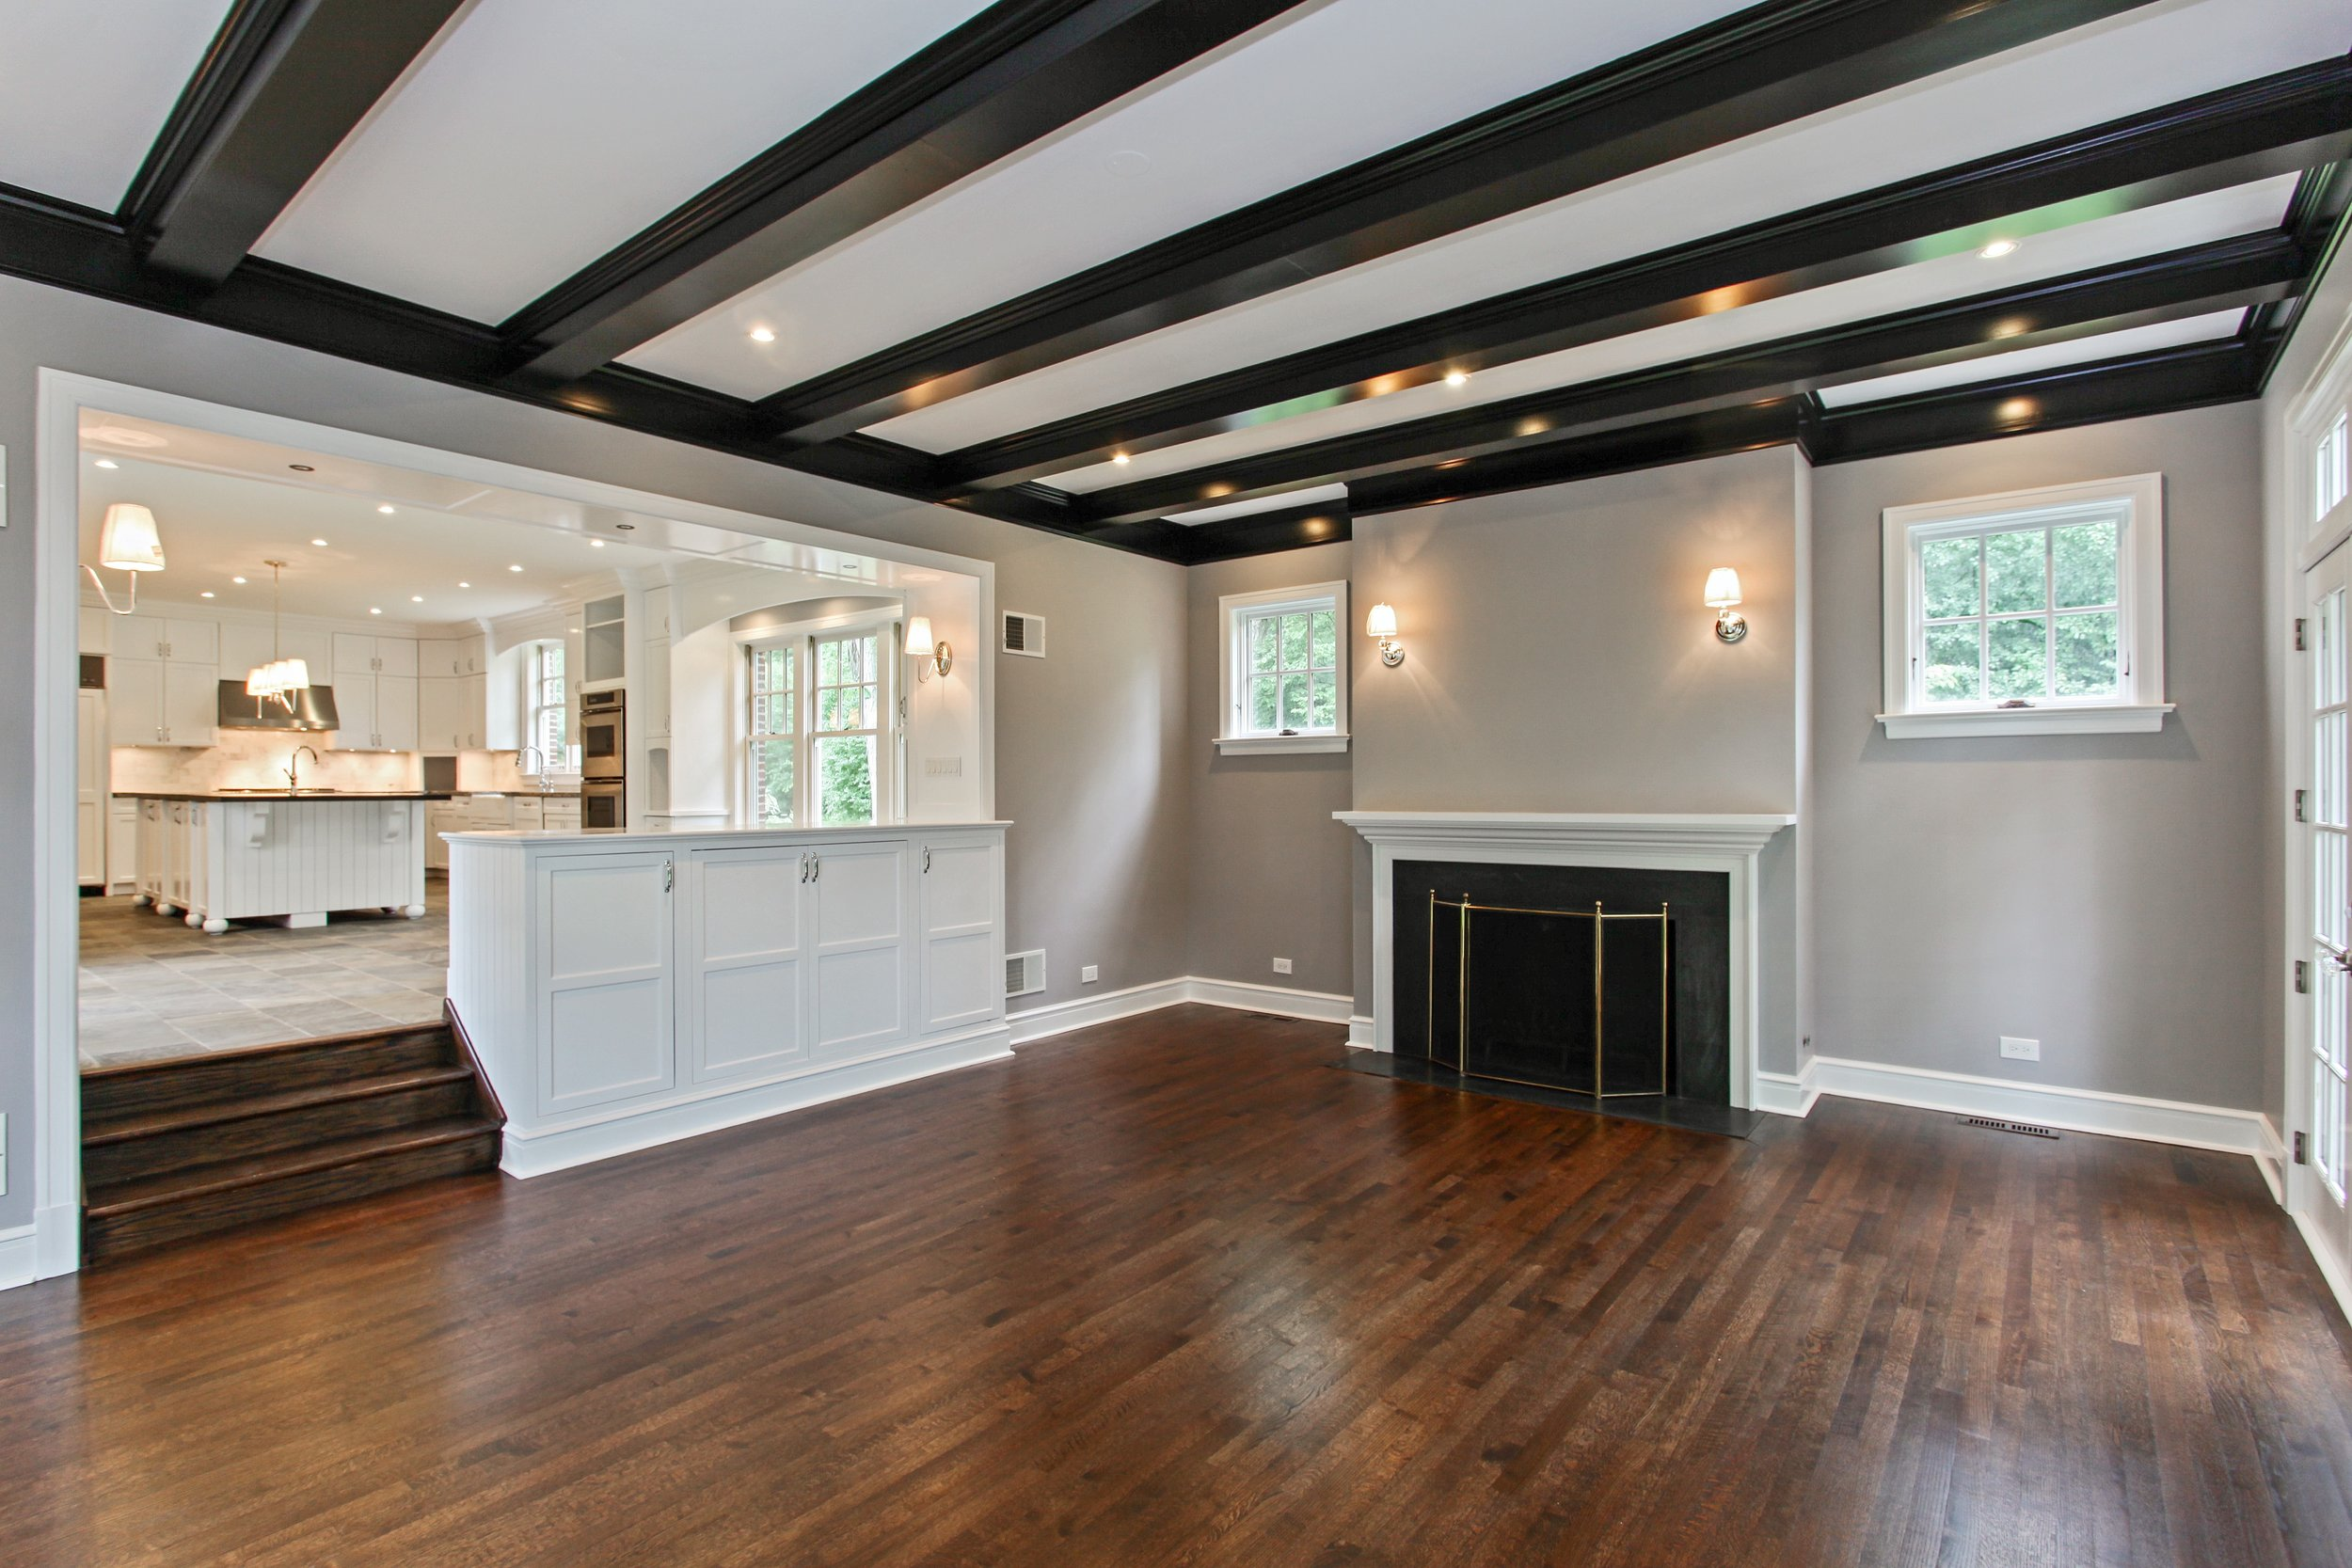 10_2050Knollwood_94_FamilyRoomKitchen_HiRes.jpg